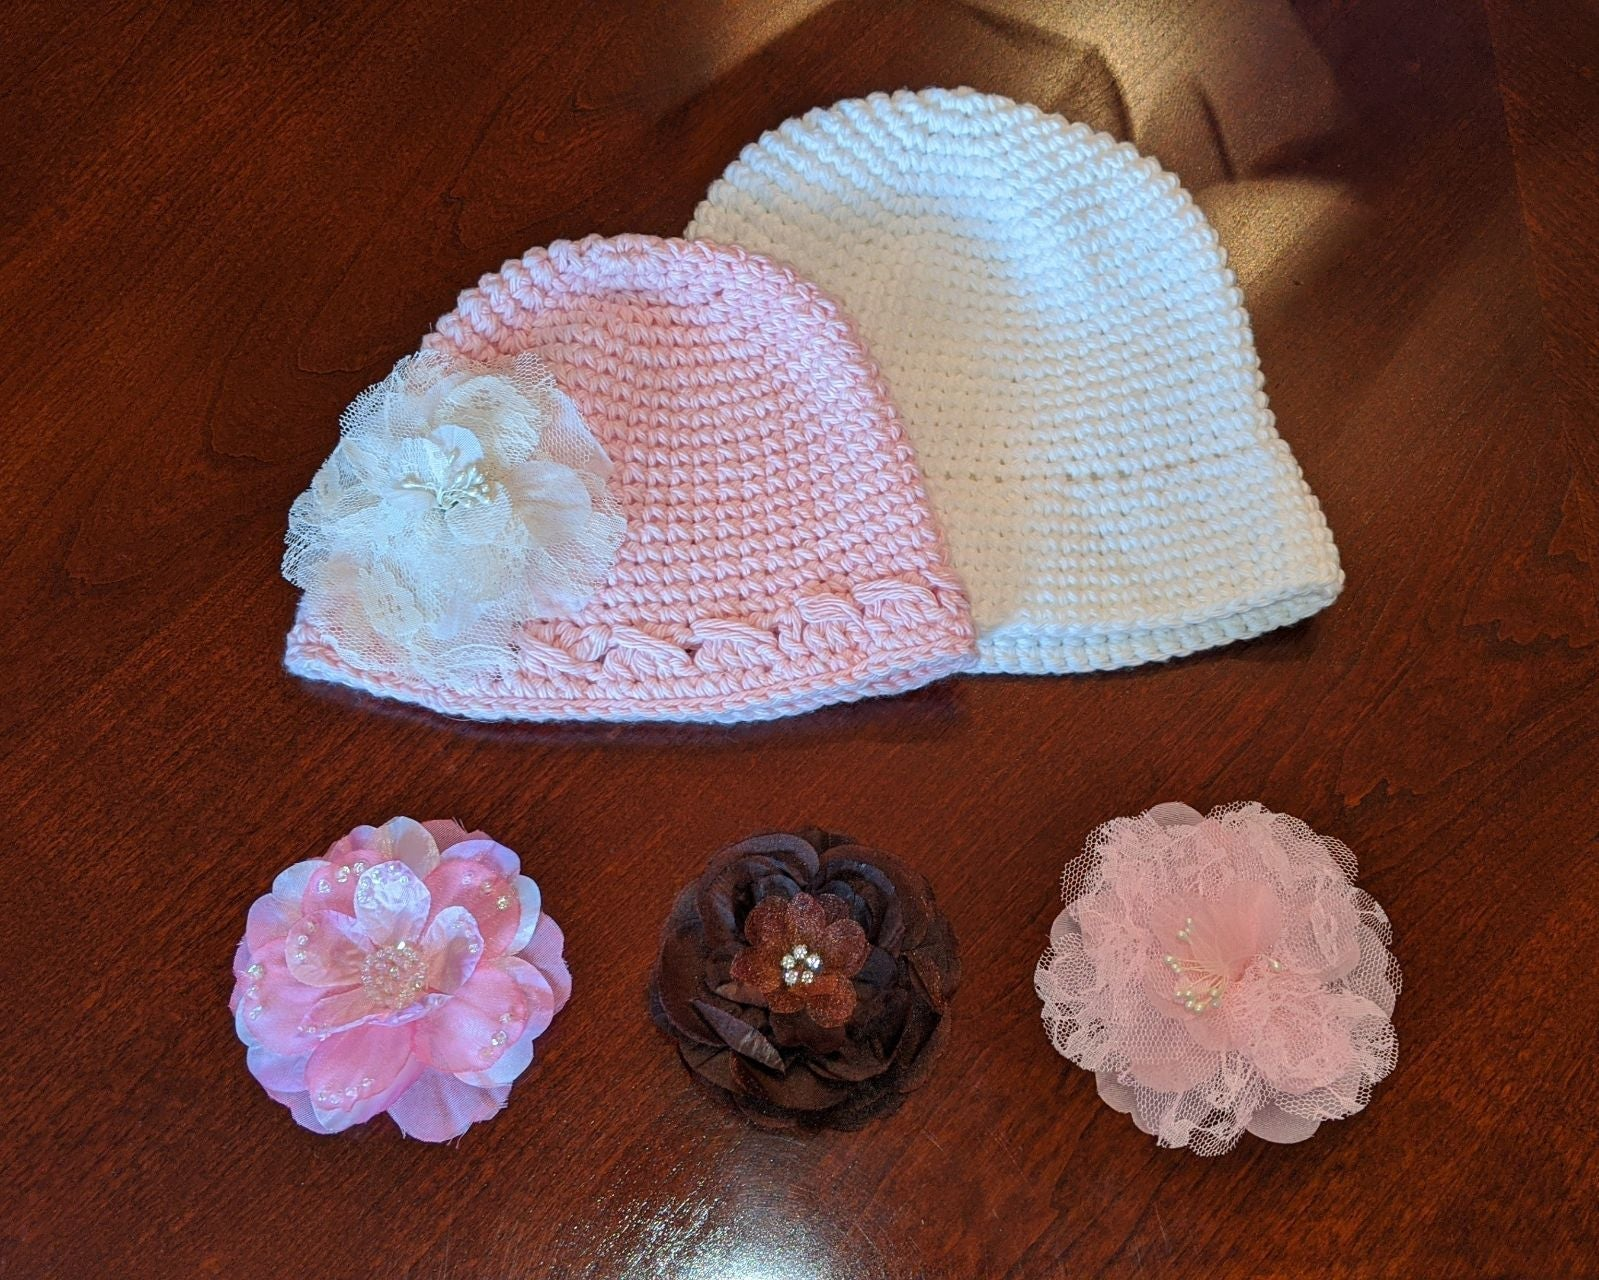 2 Toddler Crochet Hats with Flower Clips